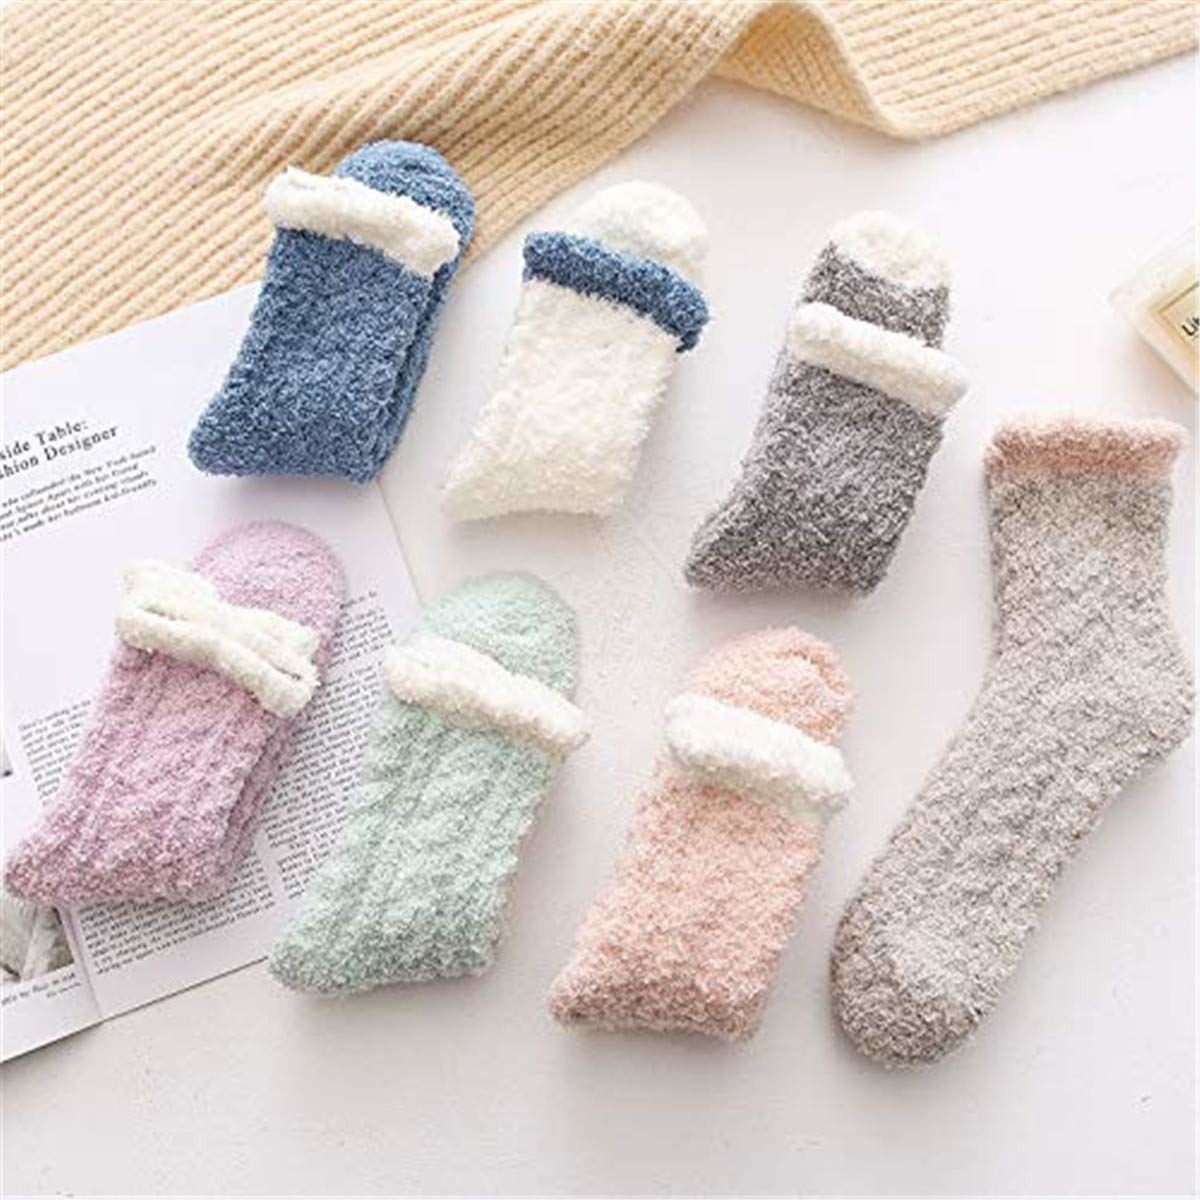 various colors of fuzzy socks